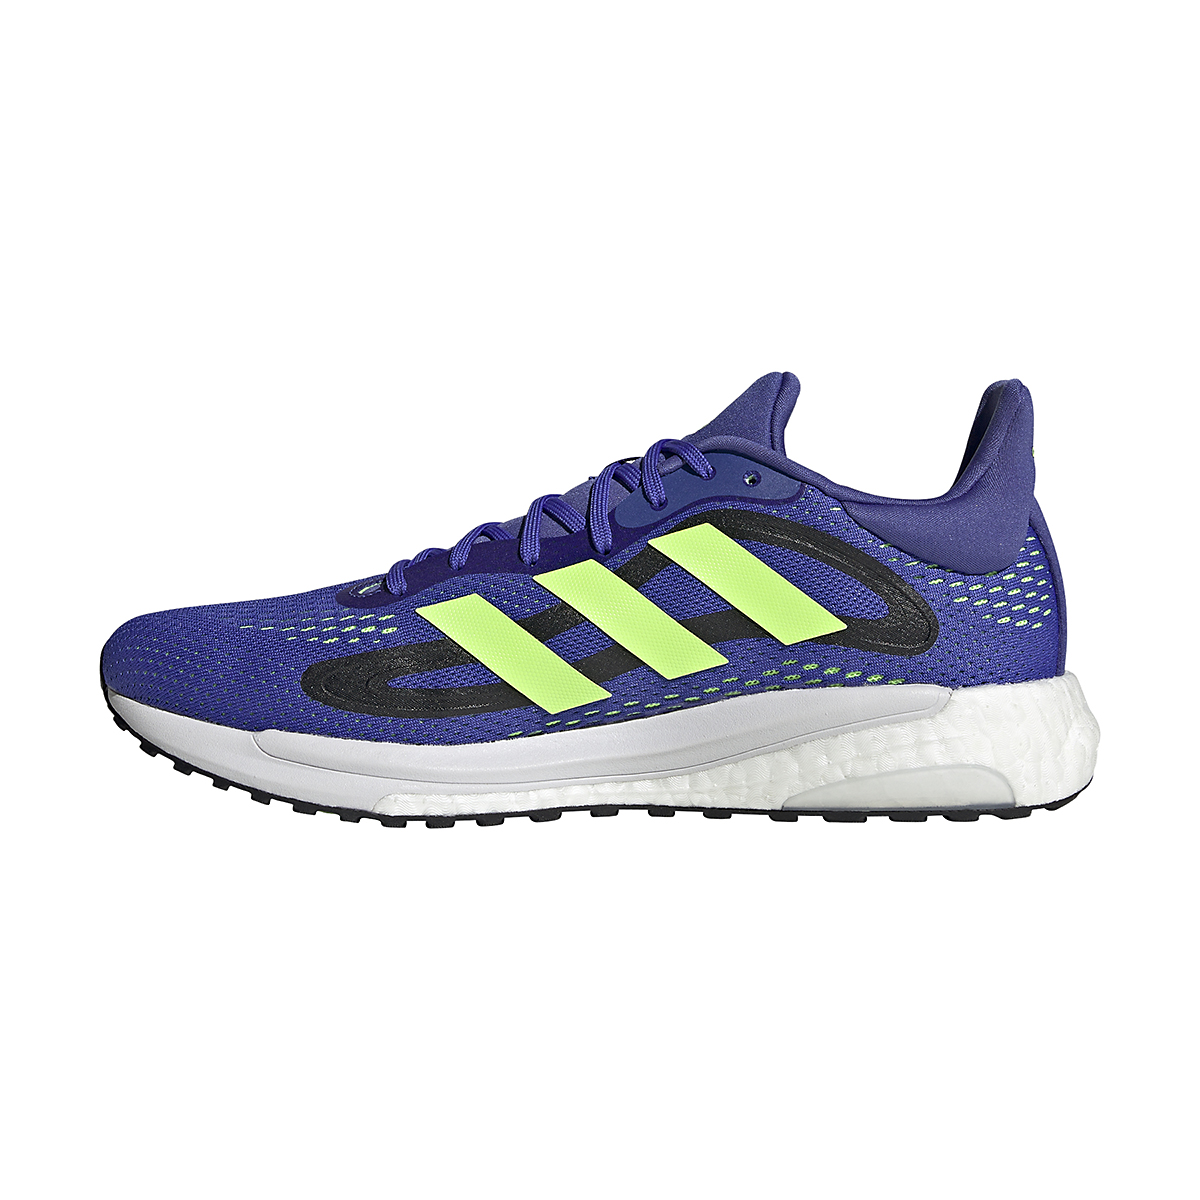 Men's Adidas SolarGlide 4 Running Shoe - Color: Sonic Ink/Signal Green/Core Black - Size: 6.5 - Width: Regular, Sonic Ink/Signal Green/Core Black, large, image 2